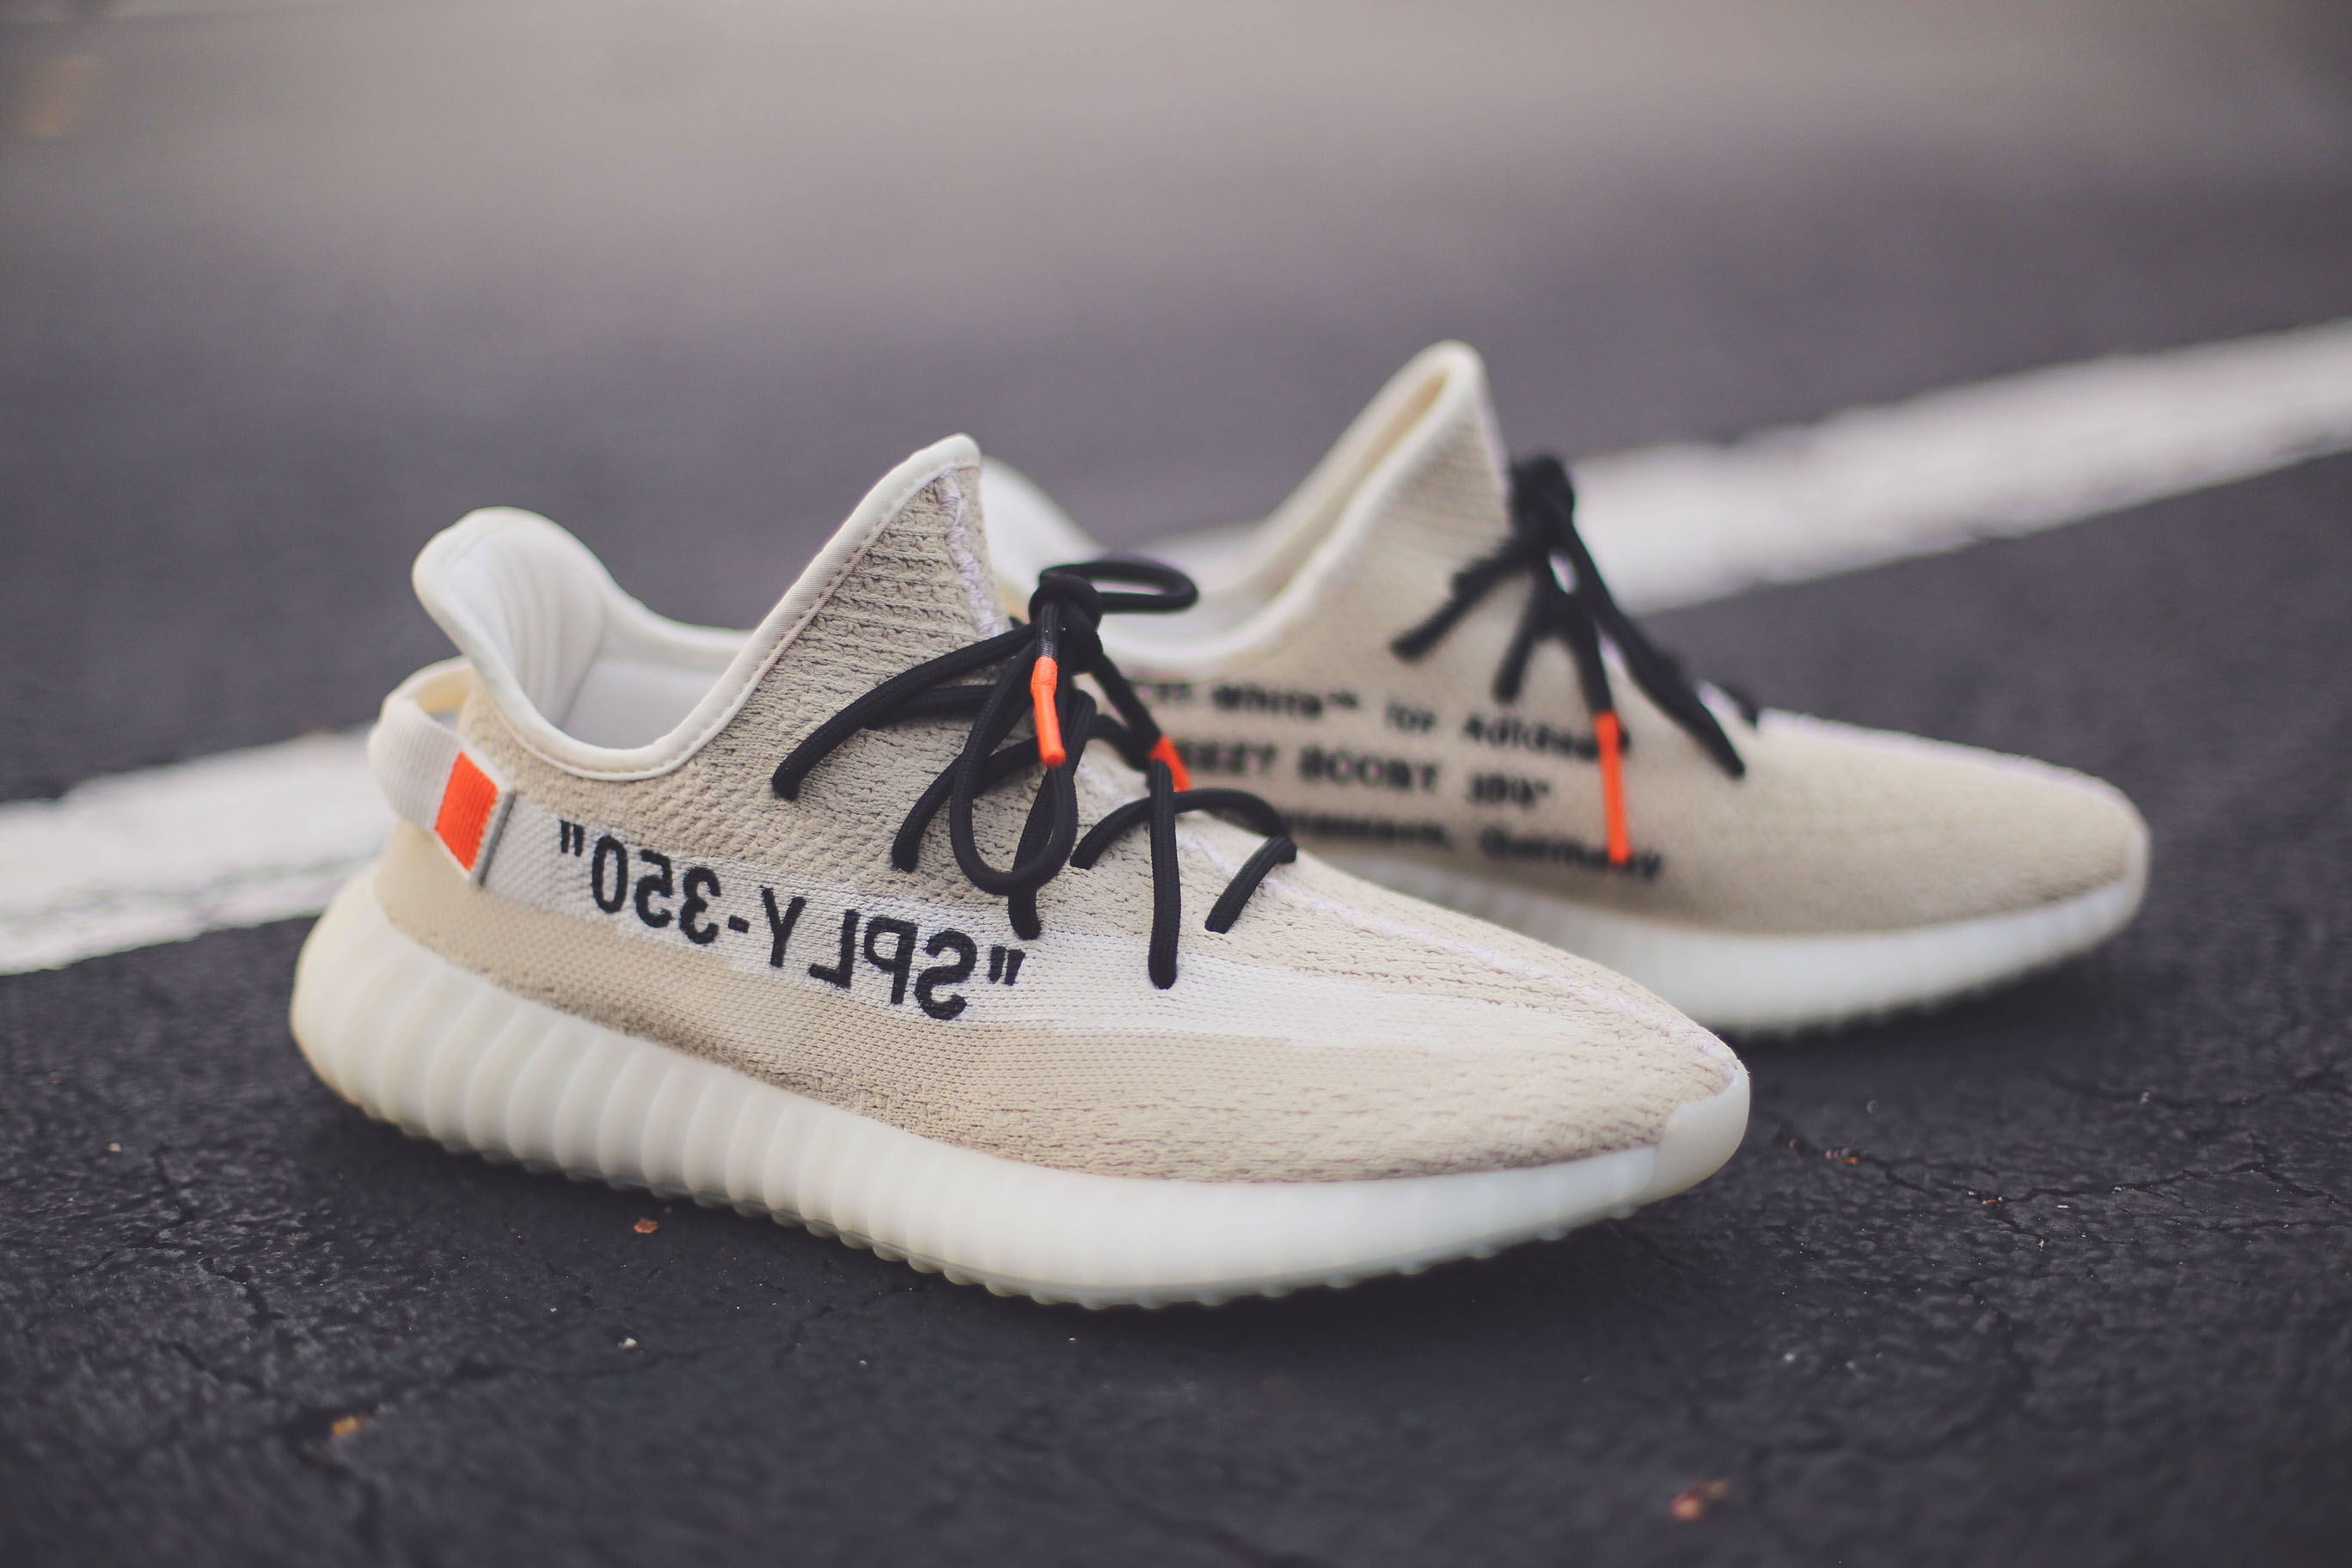 These Off White x adidas Yeezy Boost 350 V2 Customs Are Pure